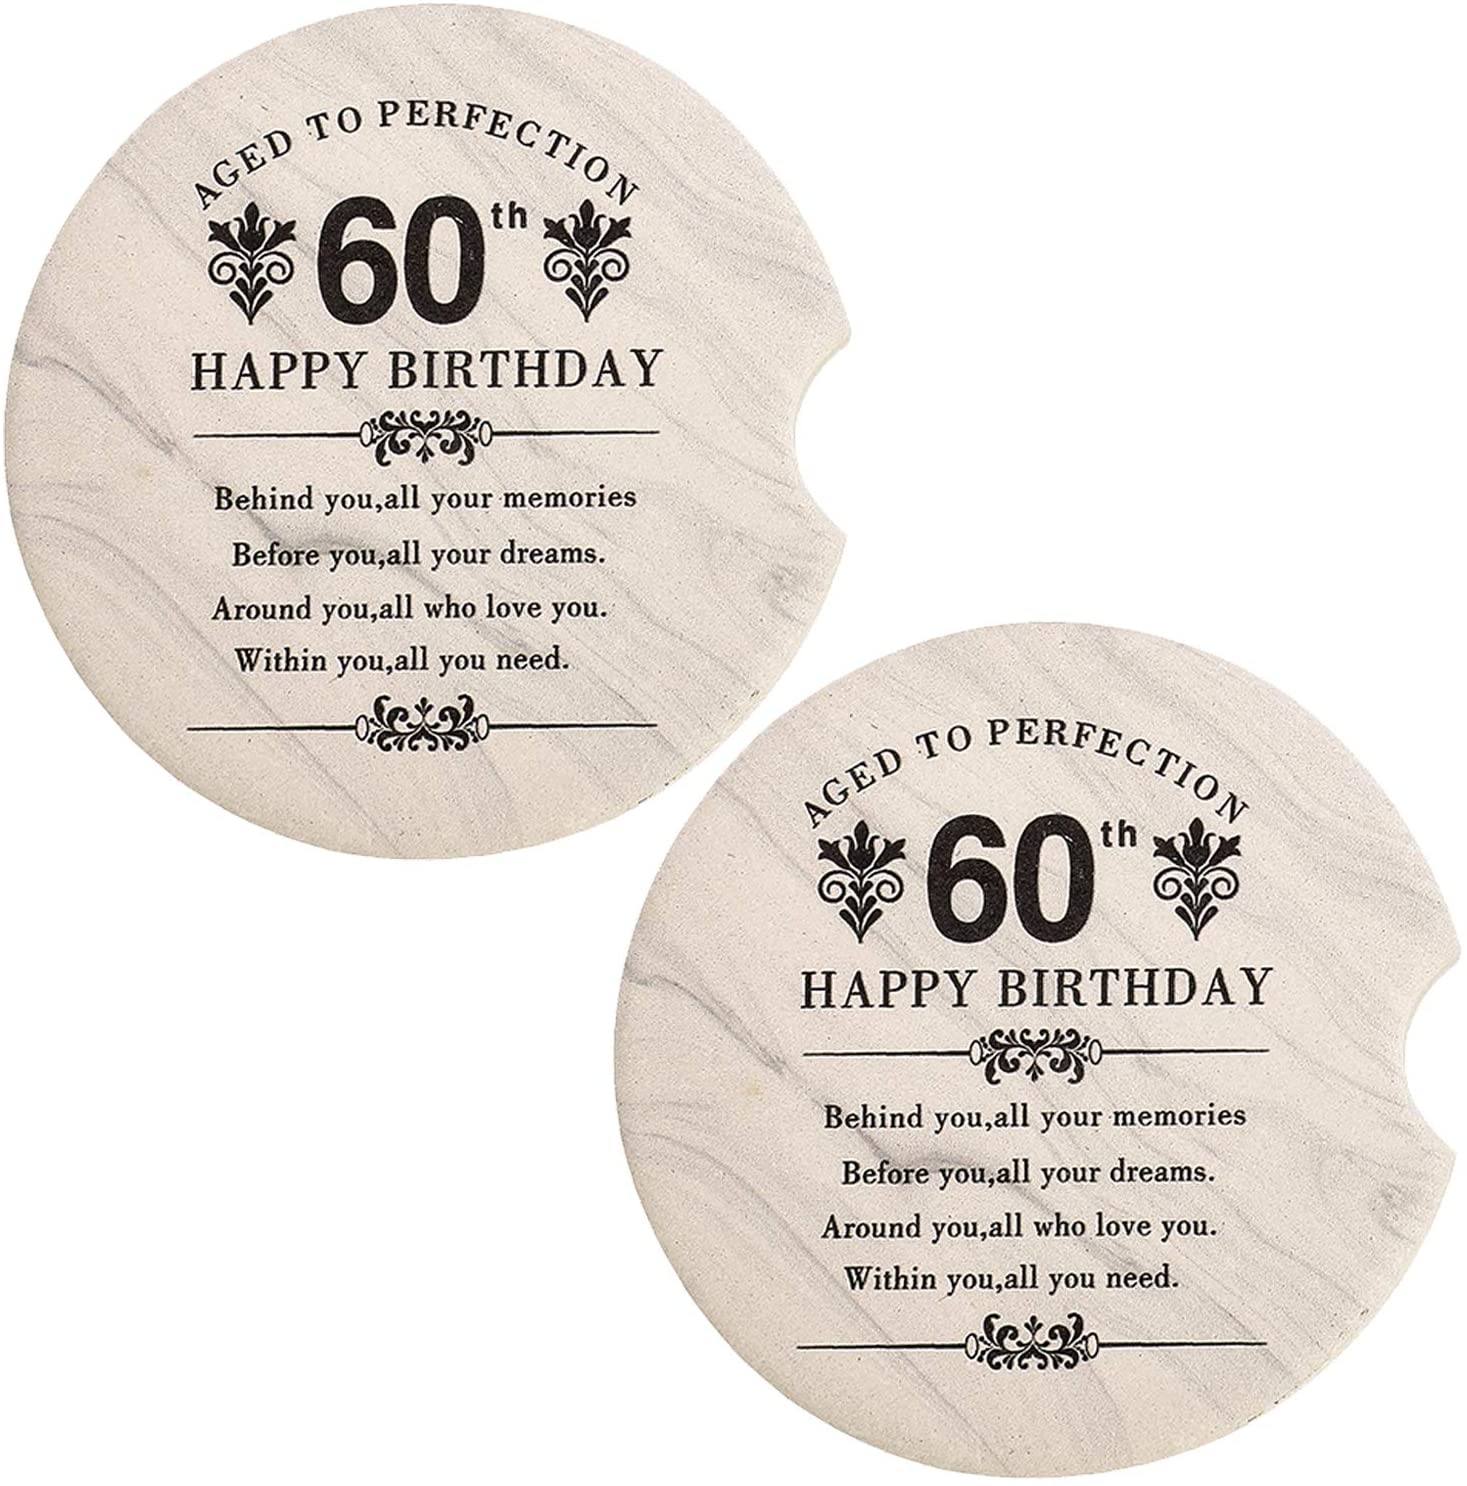 COFOZA 60th Birthday Gifts Set of 2 Ceramic Absorbent Car Coasters for Cup Holder Car Accessory with Gift Box (2.56)